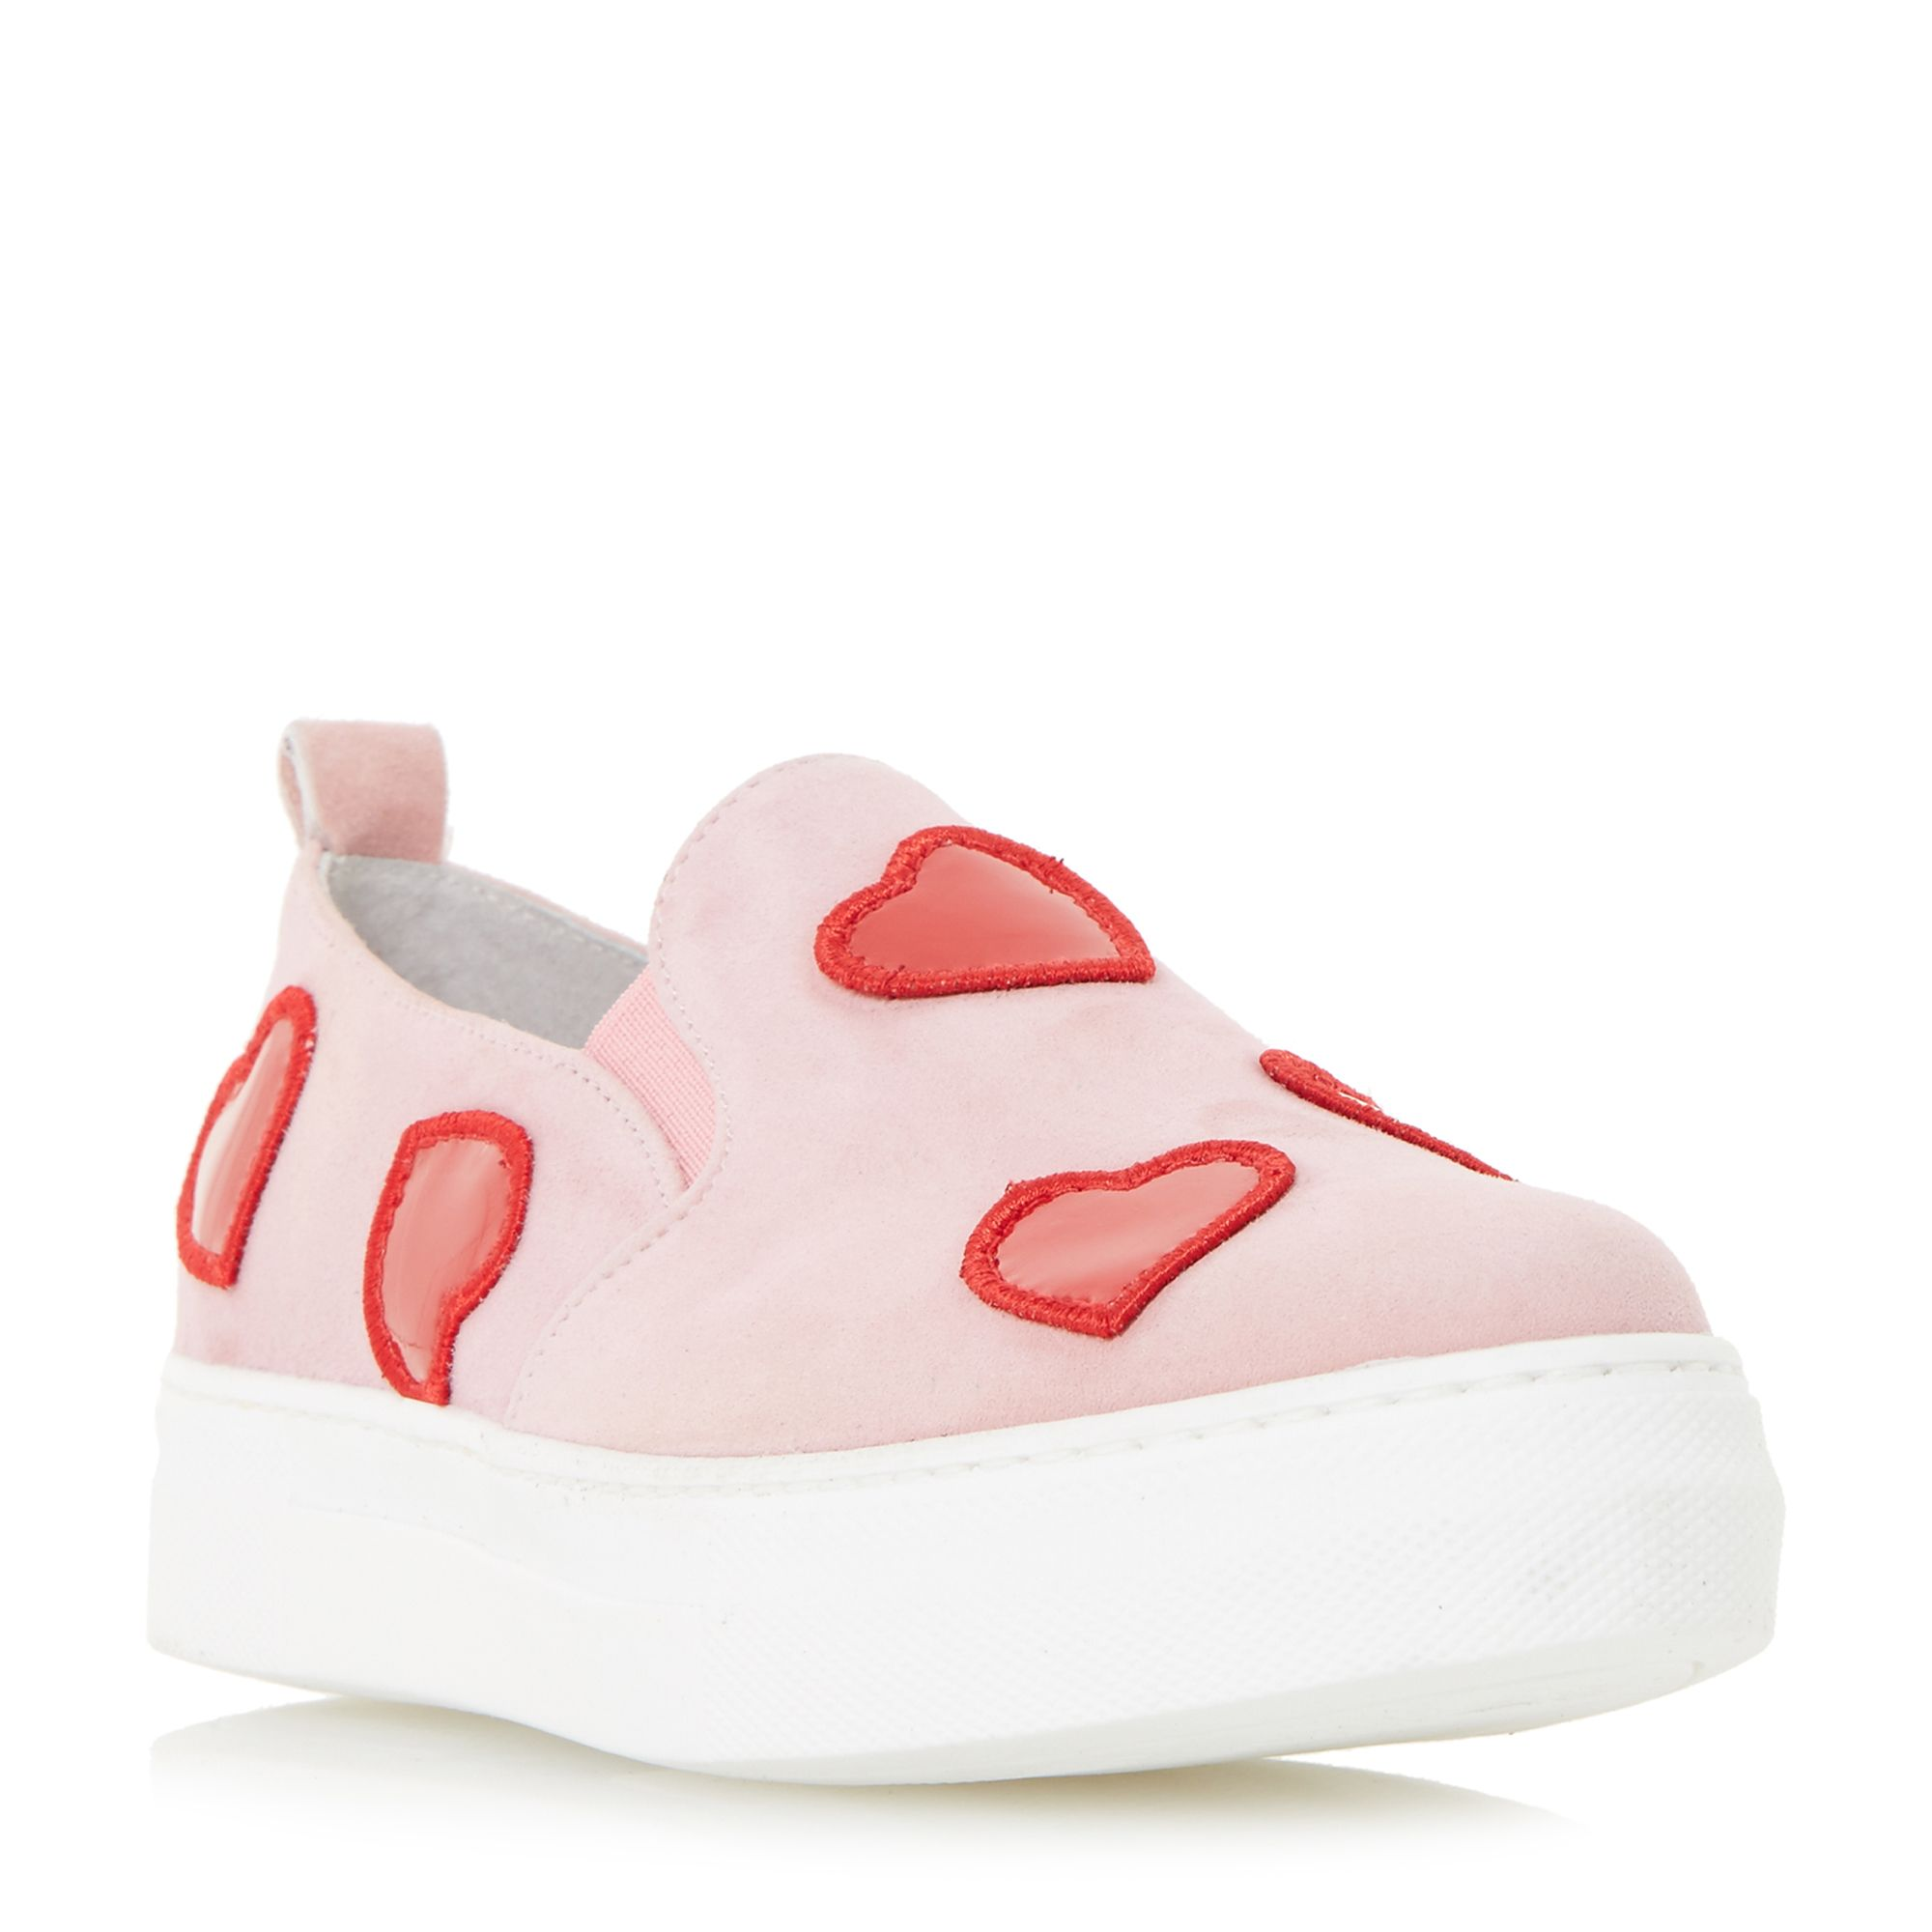 Dune Black Ever-After loveheart badge slip on shoes, Pink